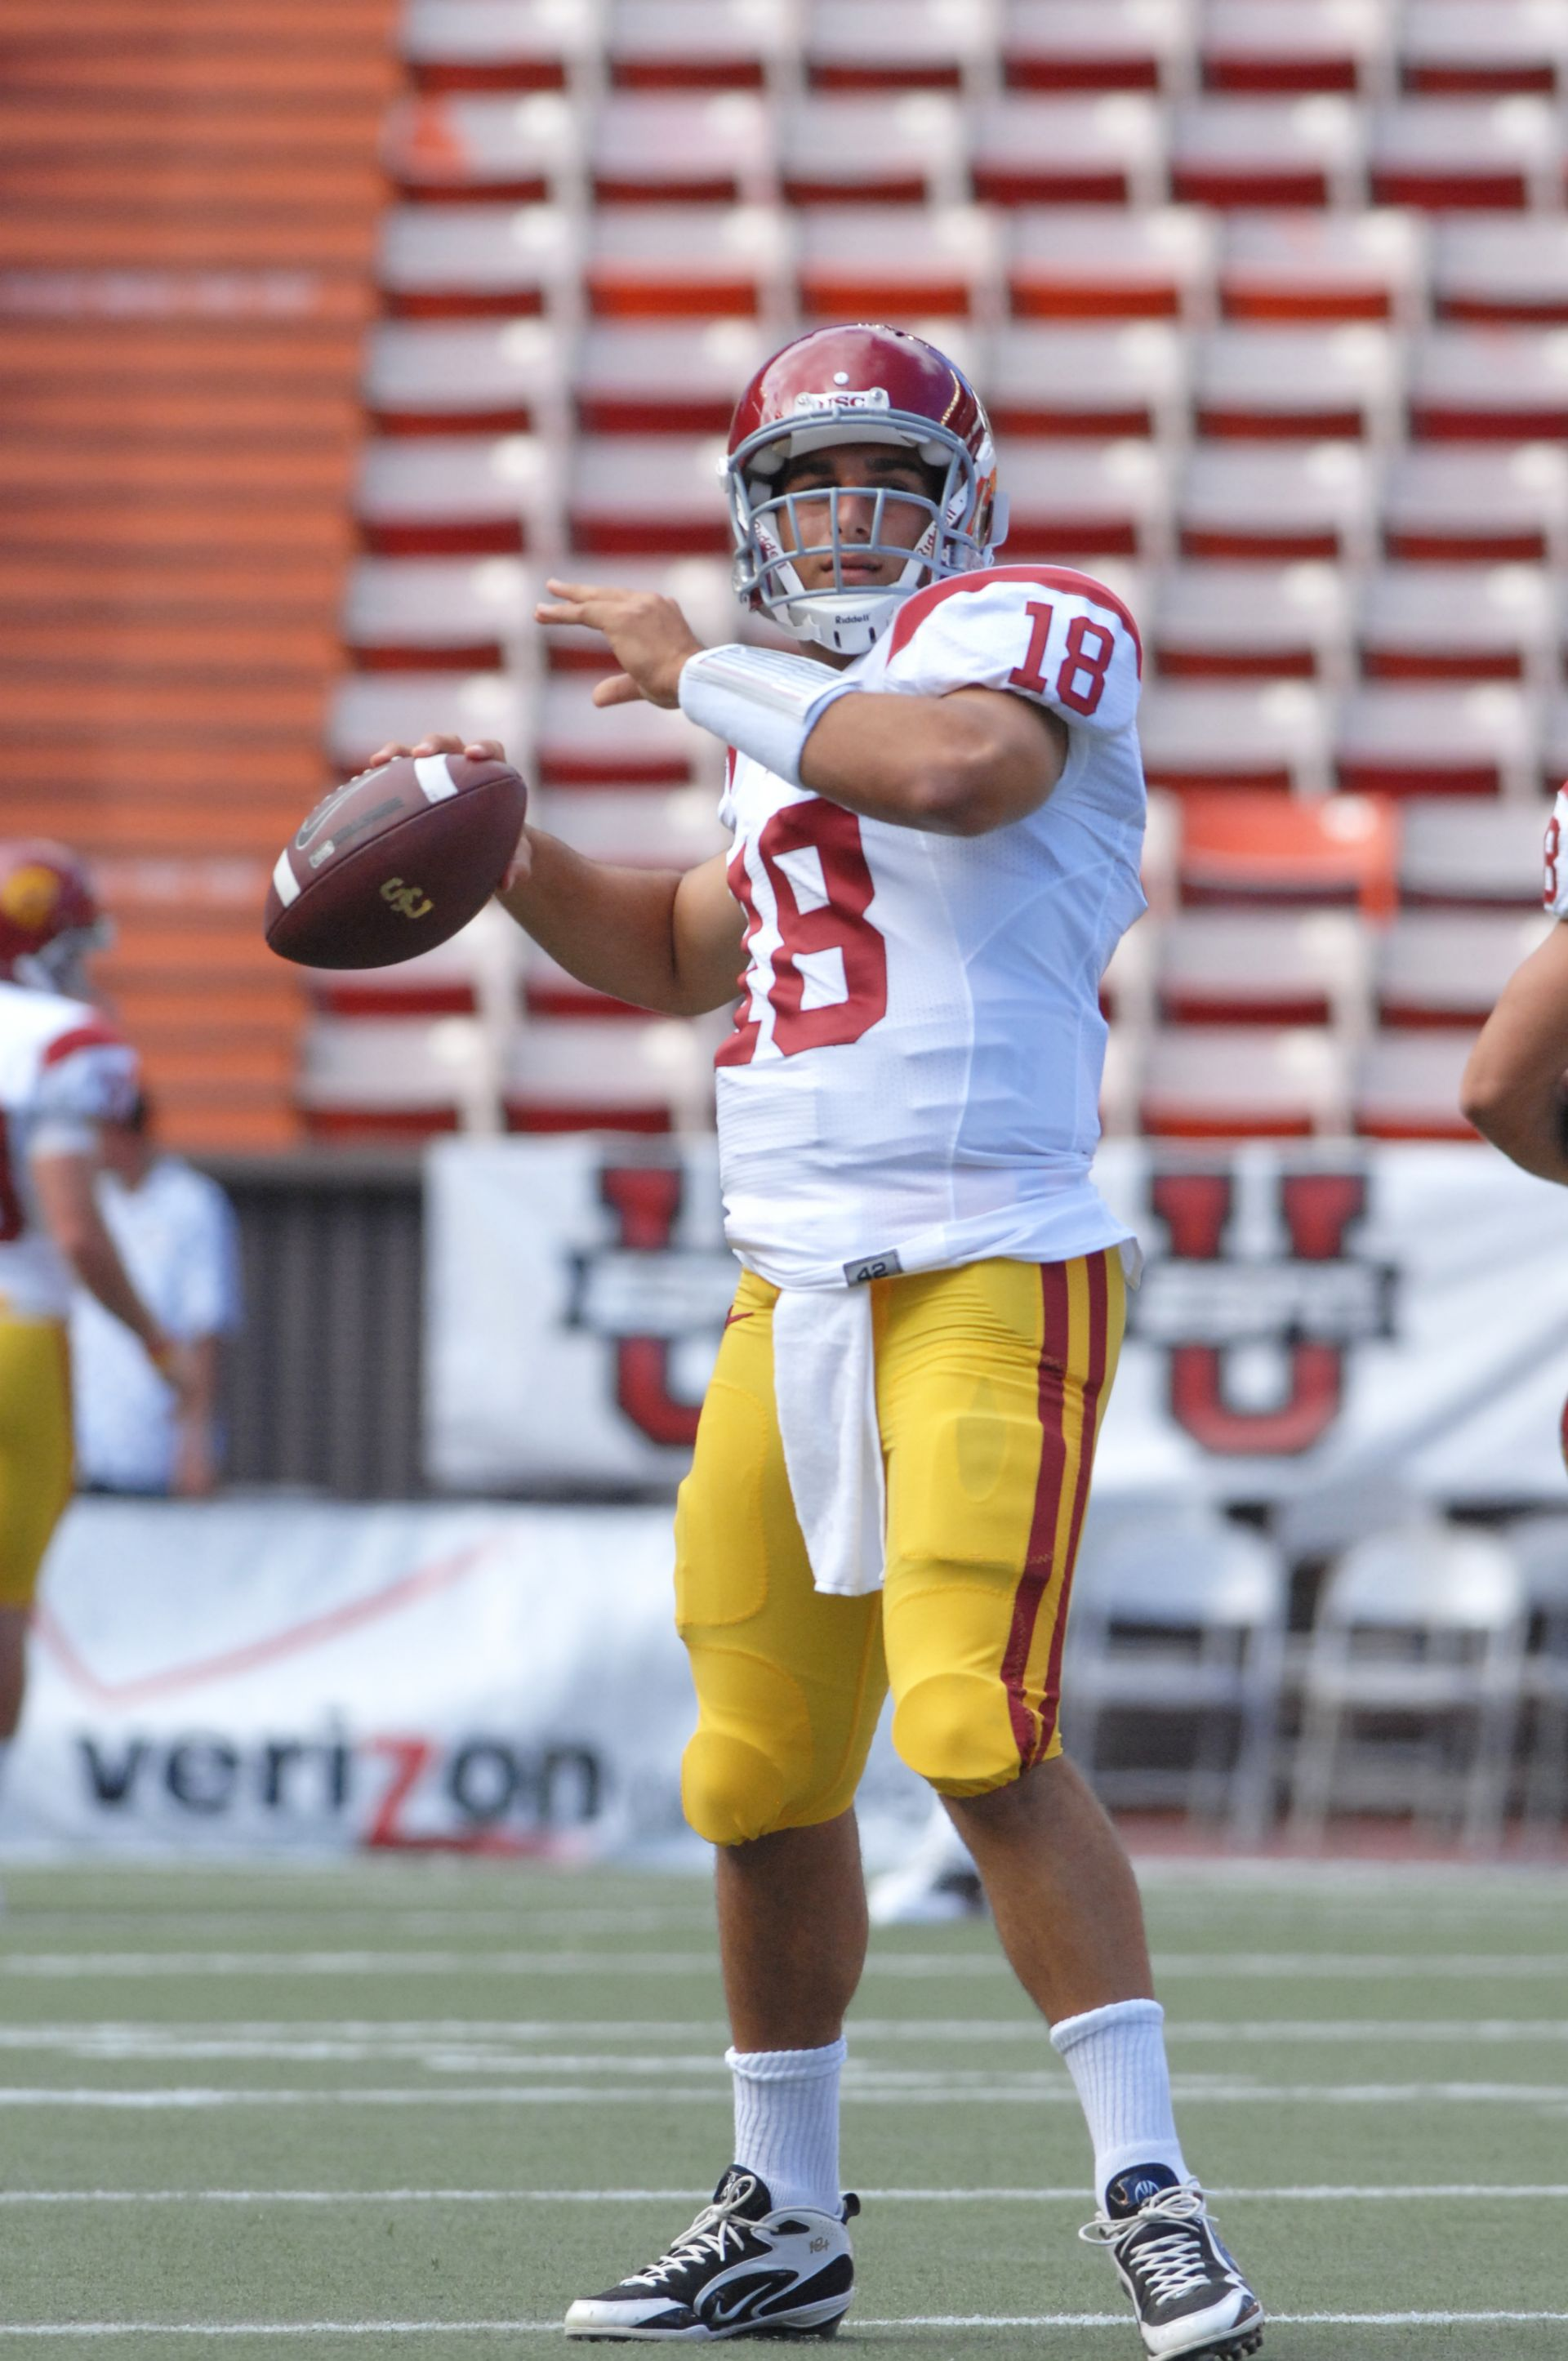 John Manoogian '09 - USC Football